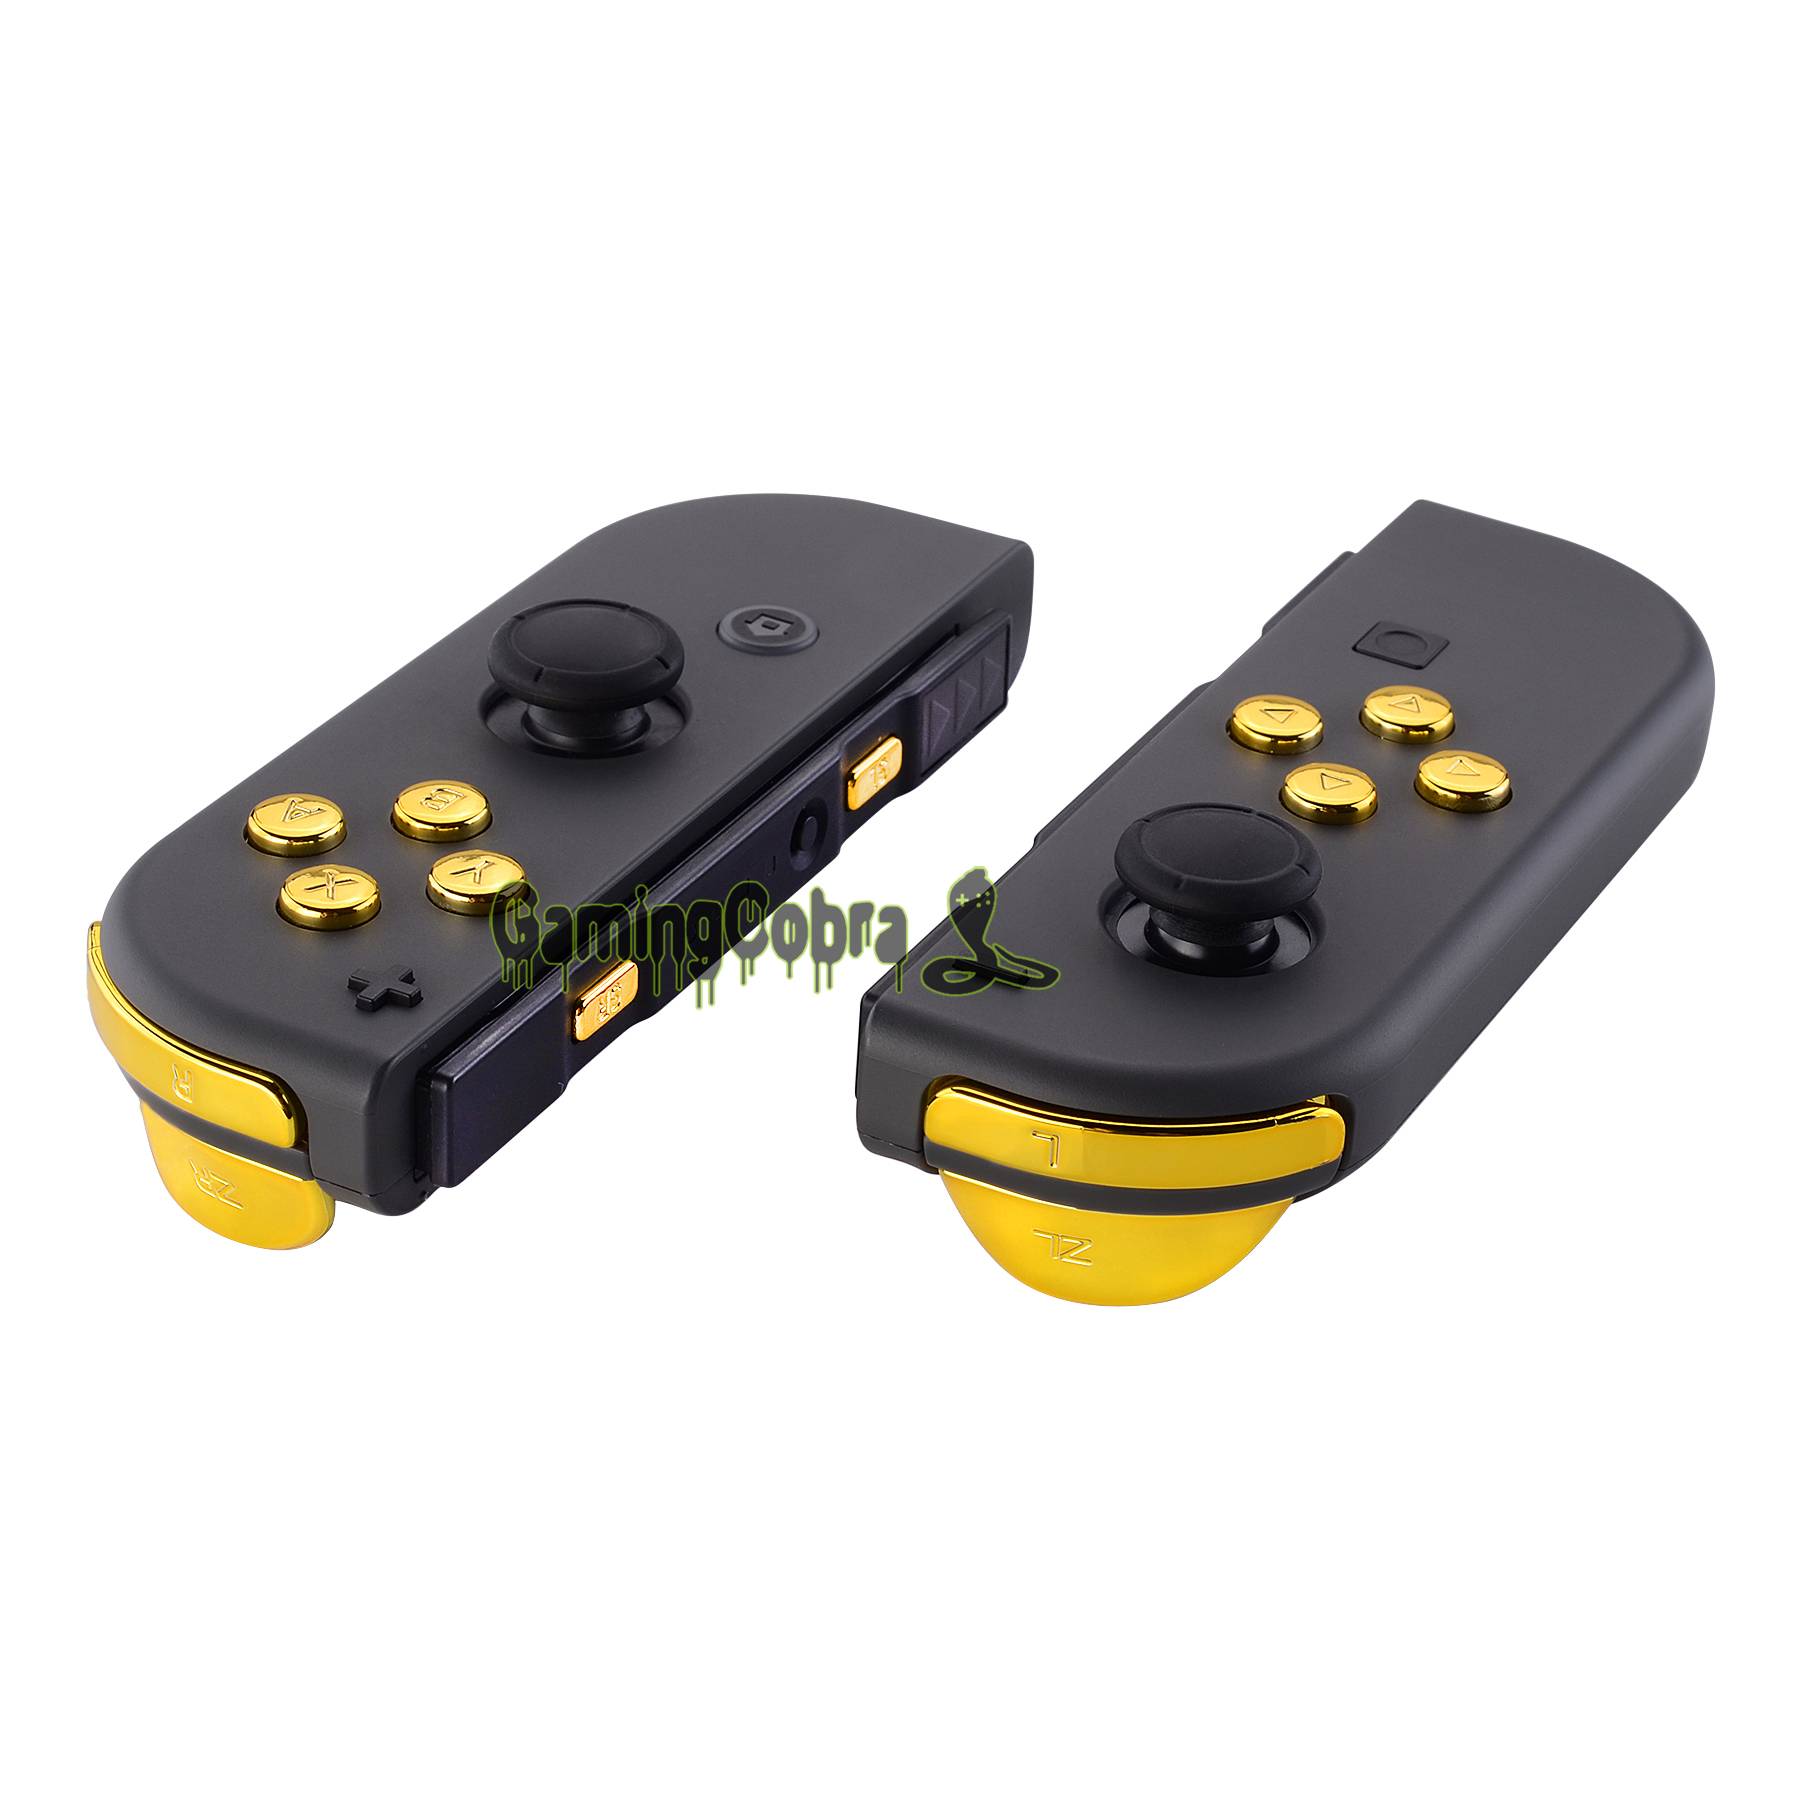 Chrome Gold Replacement ABXY Direction Keys SR SL L R ZR ZL Trigger Full Set Buttons W/ Tools For Nintendo Switch Joy-Con